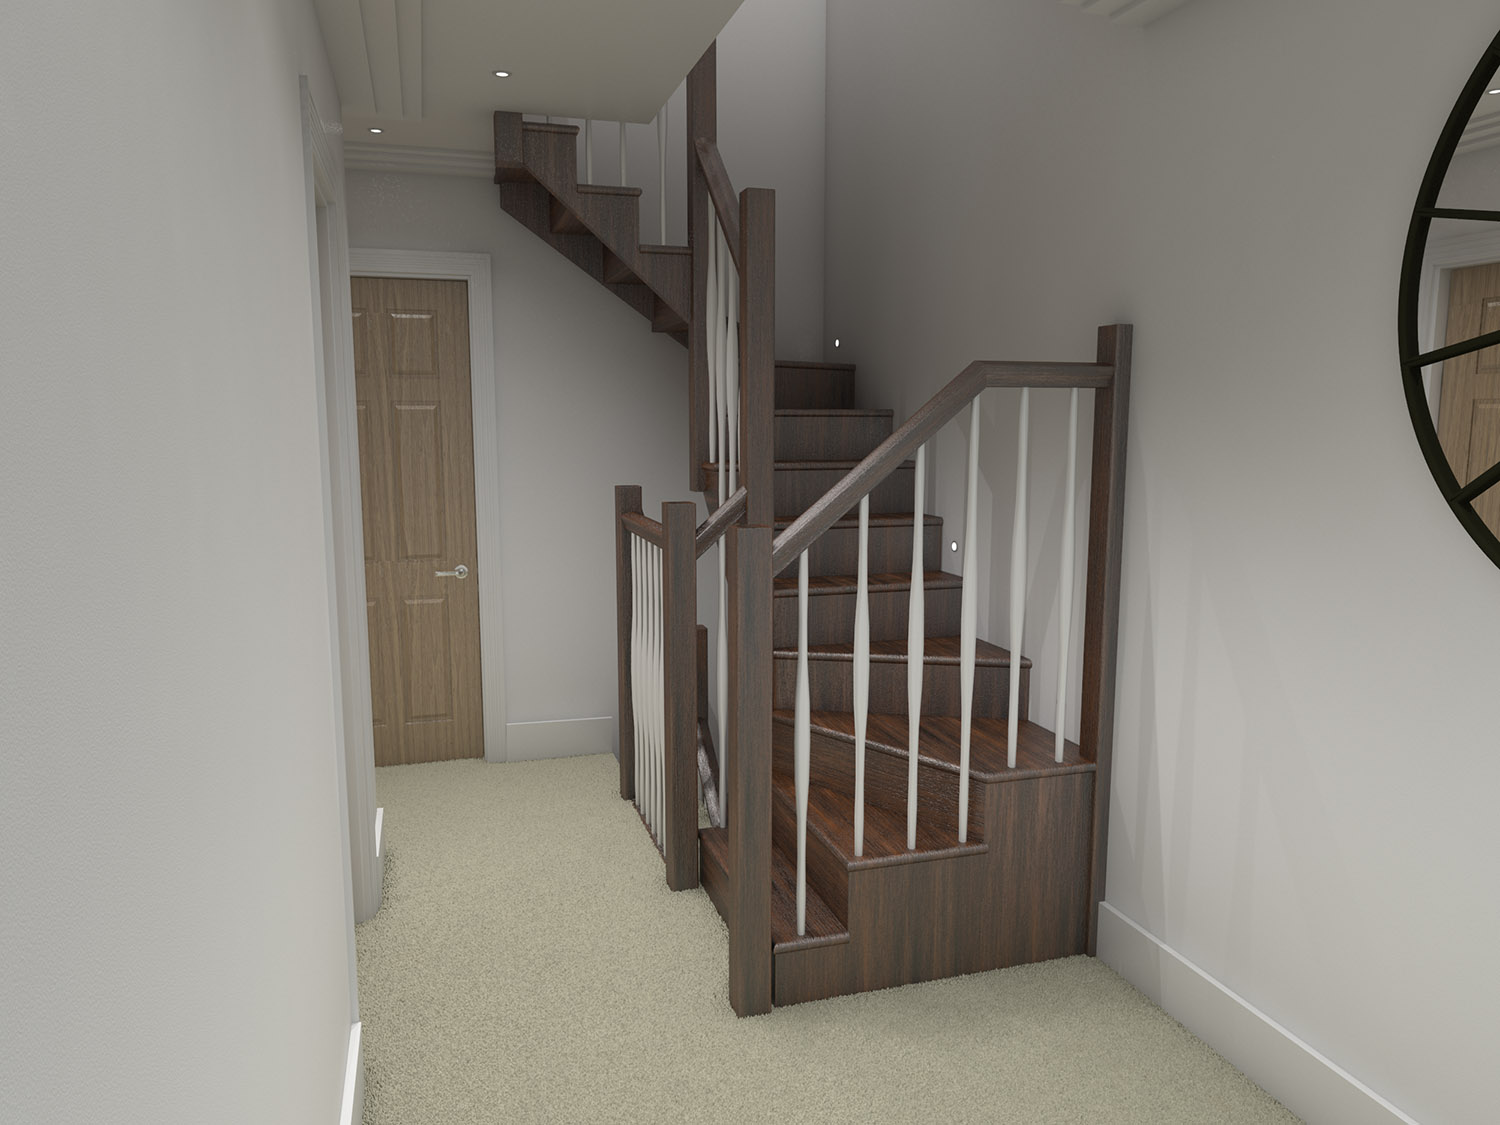 Loft conversion design and build services